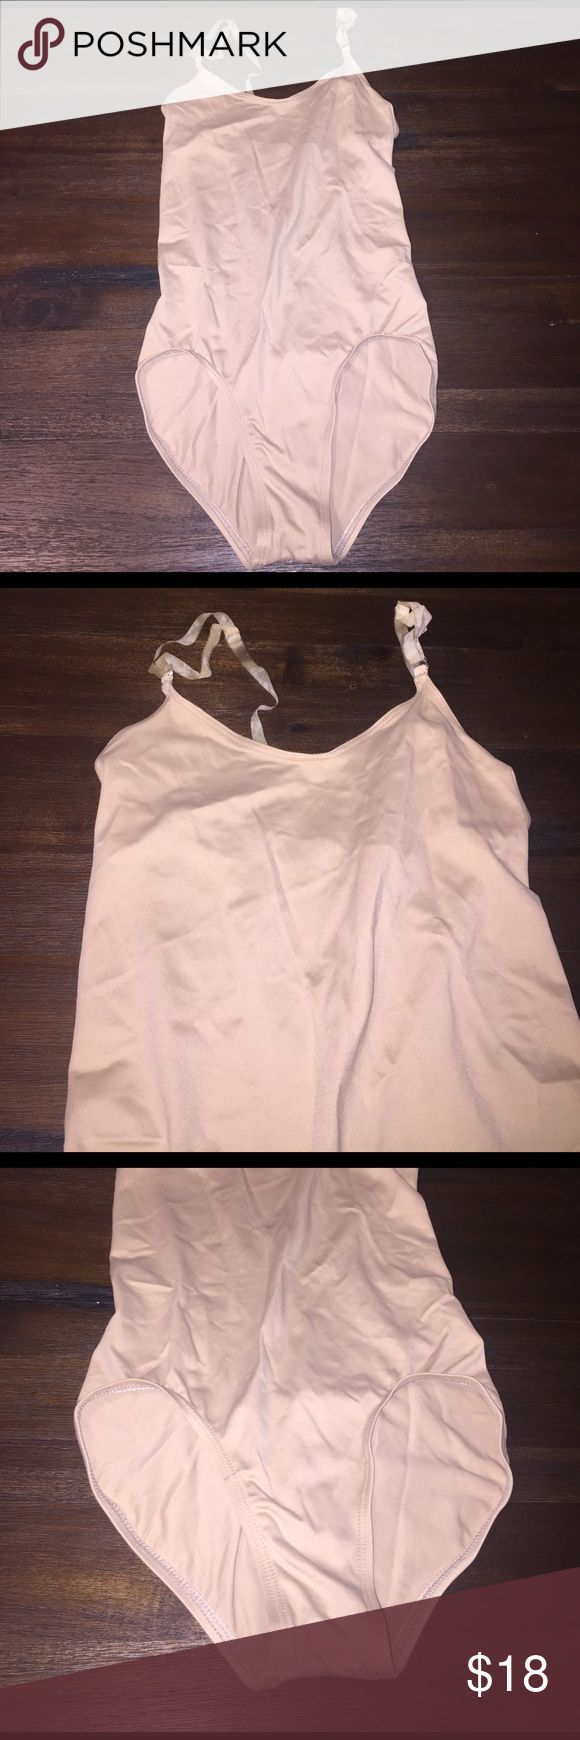 Body Wrappers - Nude Leotard Nude bodysuit with v neck and adjustable straps. Straps are a little worn and could be replaced, but leotard in great condition. Body Wrappers Swim One Pieces